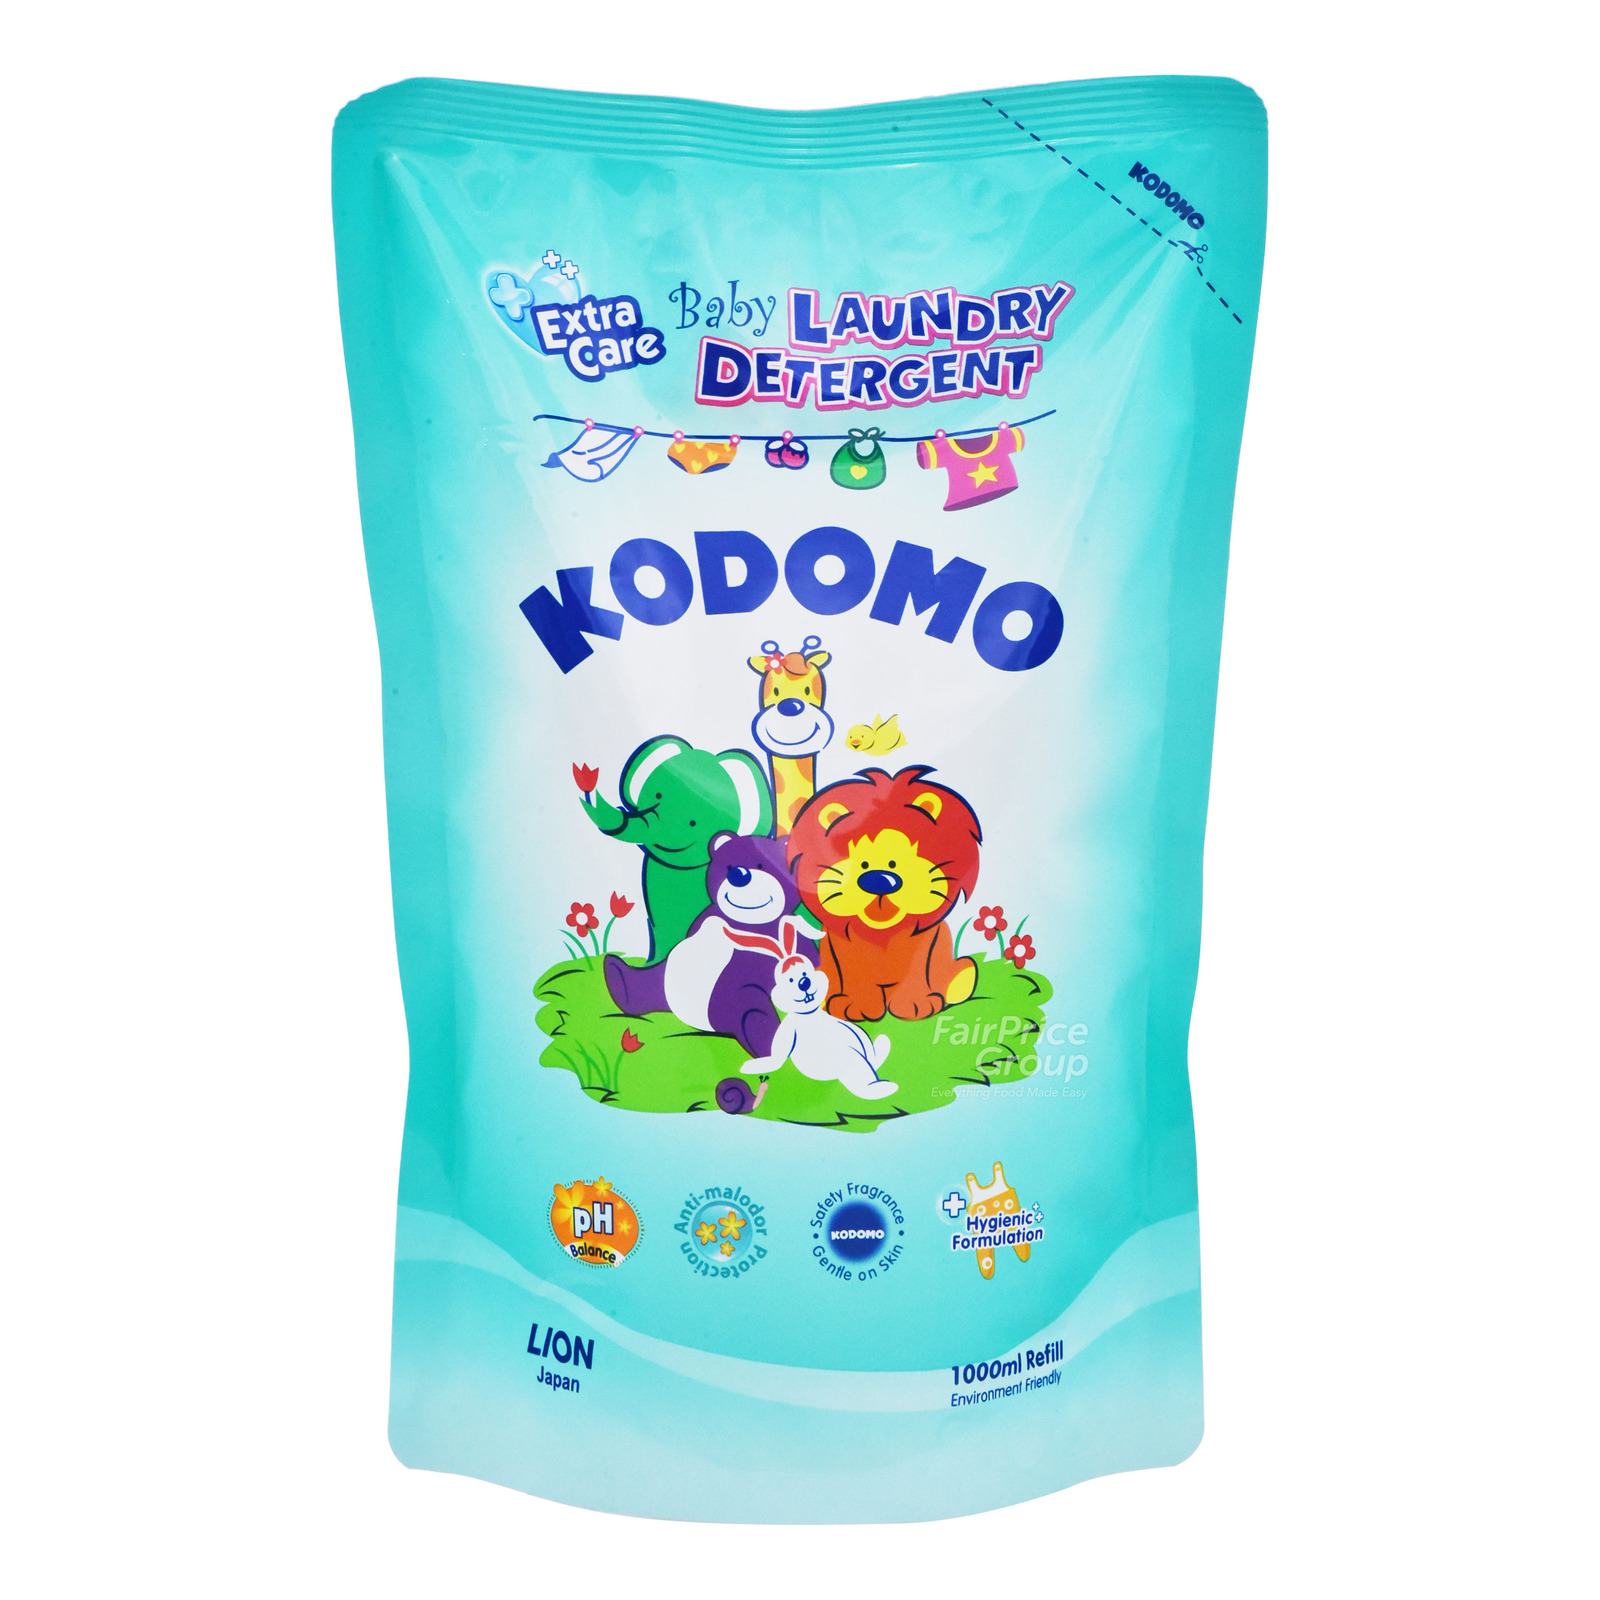 KODOMO baby laundry detergent 1l refill extra care